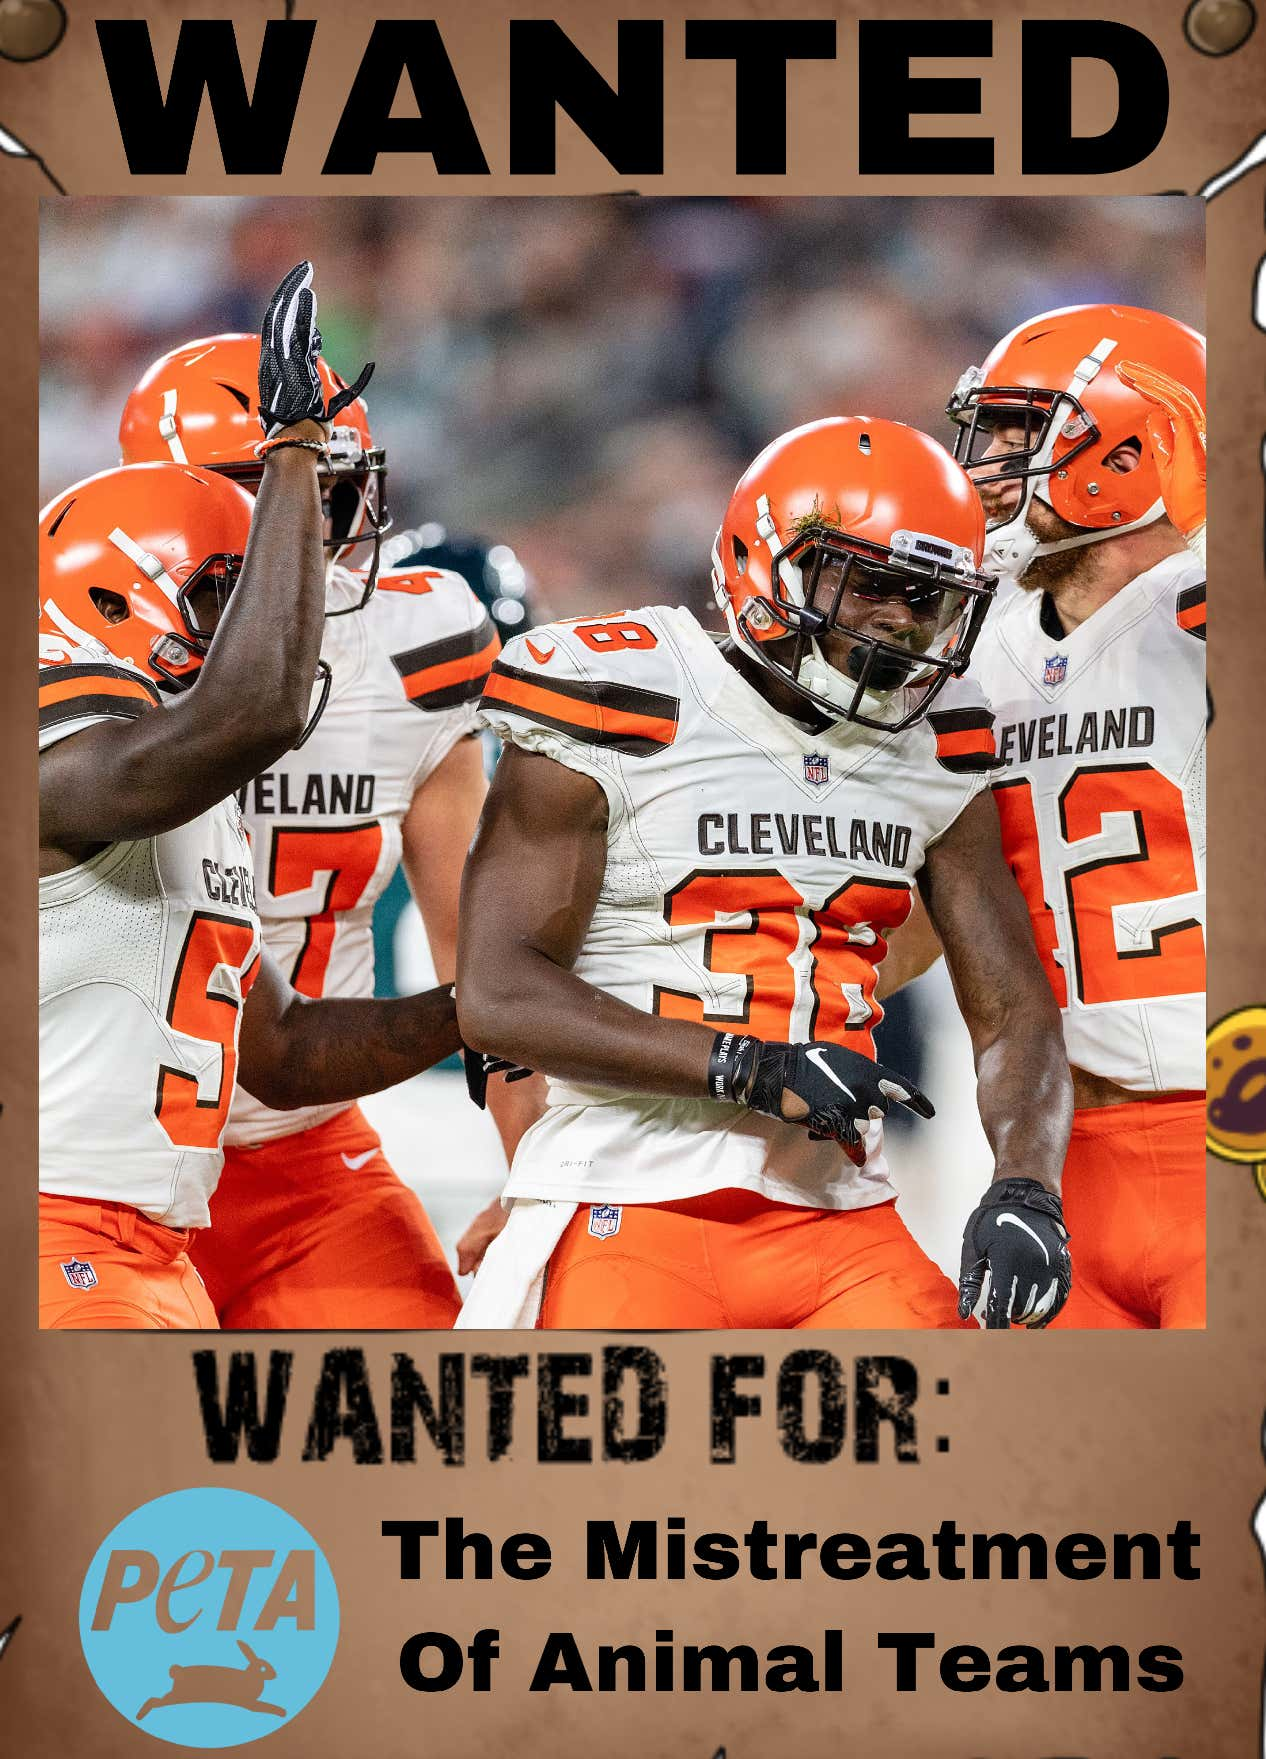 924d4a747b7 If the Browns can run the table